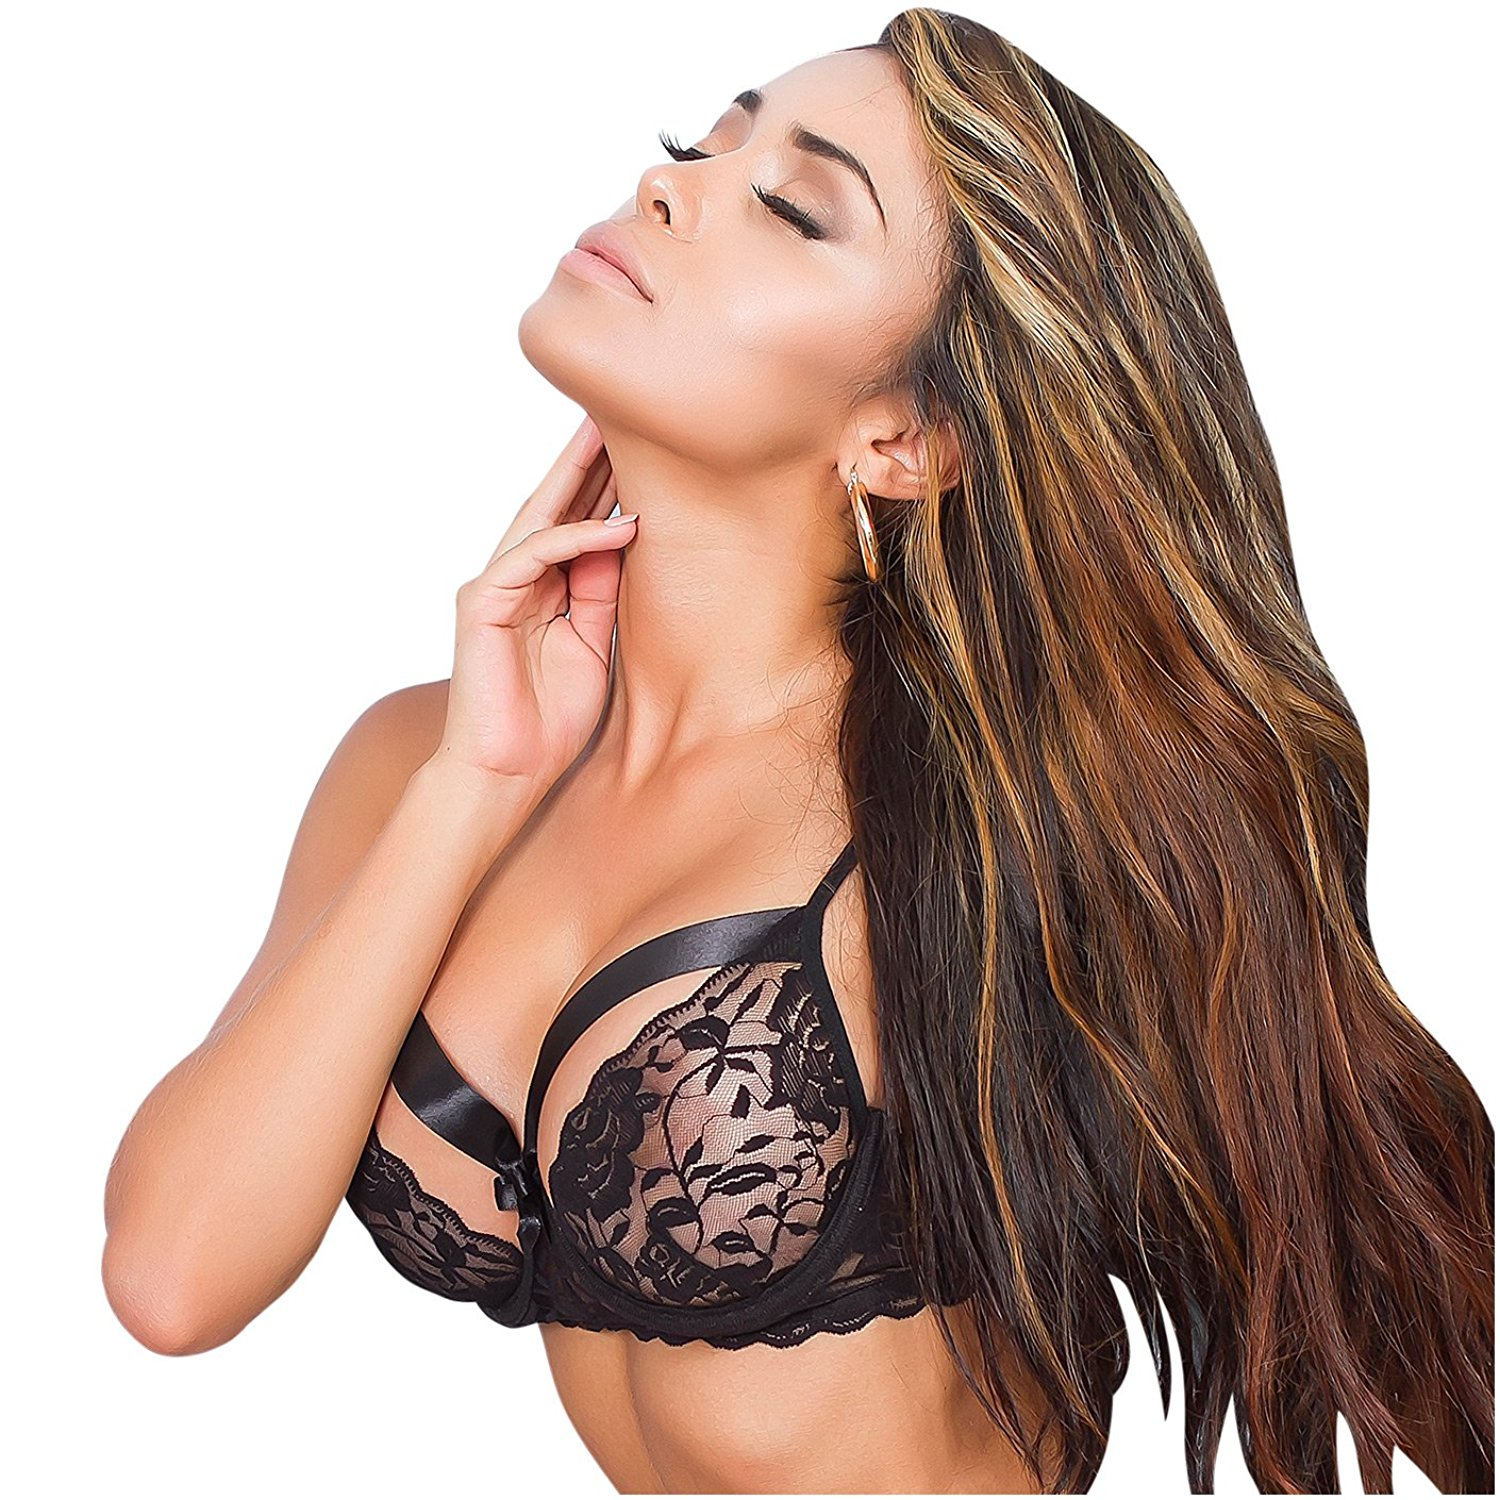 2c18df4473 Get Quotations · Amawi 0606 Pekaboo Lace Bra For Women Ropa Interior  Femenina Colombiana Sensual